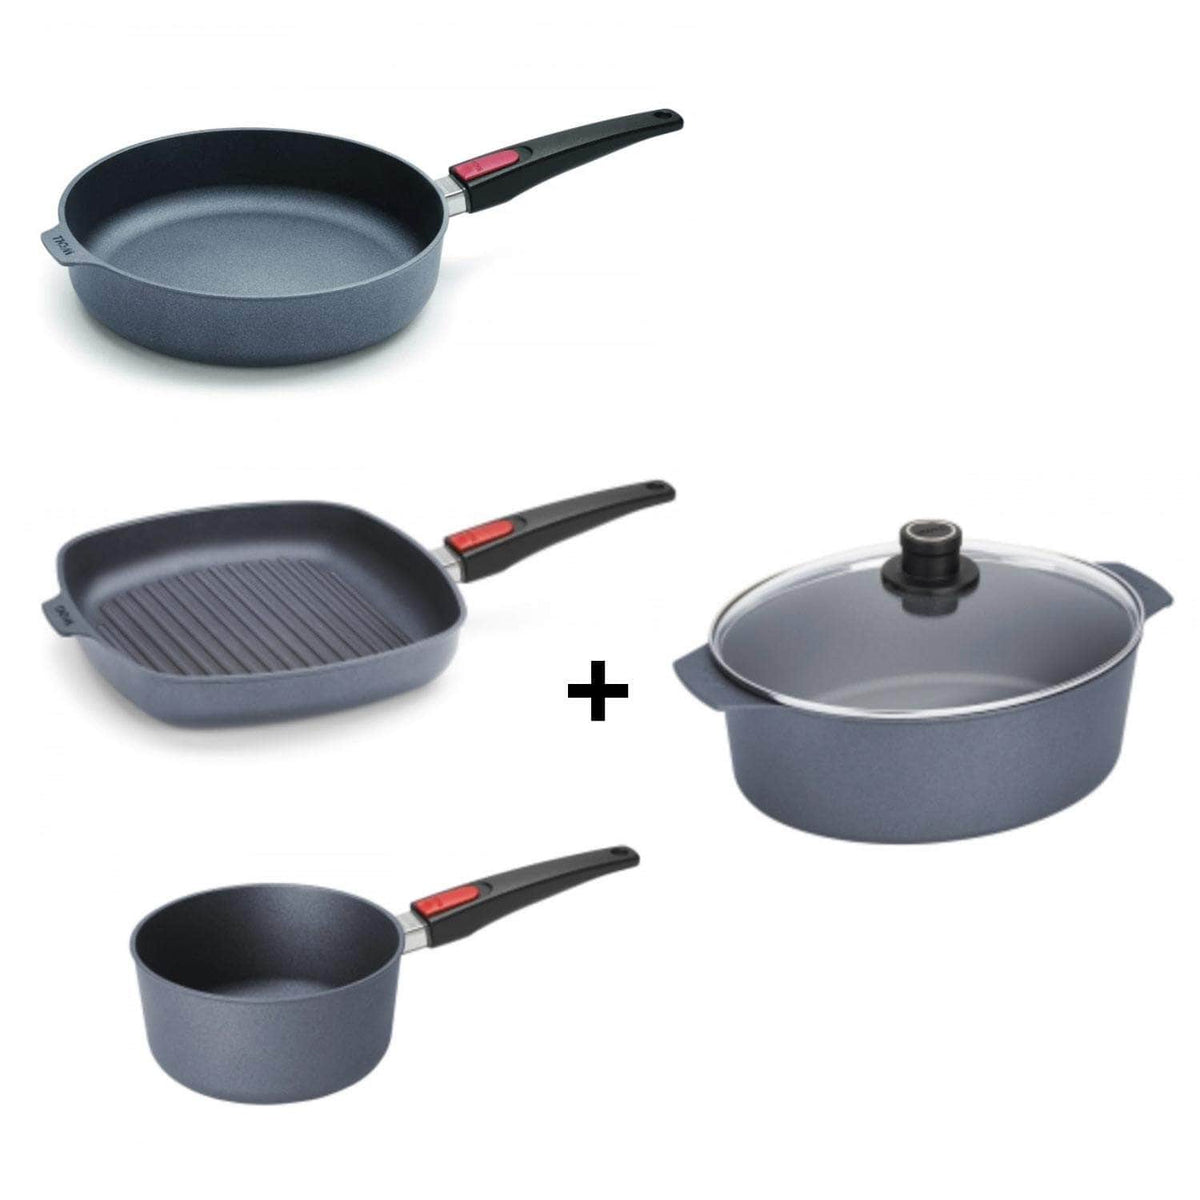 Complete Cookware Sets - Save Up To £80 - The Full Monty! Saute, Griddle & 20cm Sauce Pan + Casserole/Roaster (all with lids) Set - Save £80